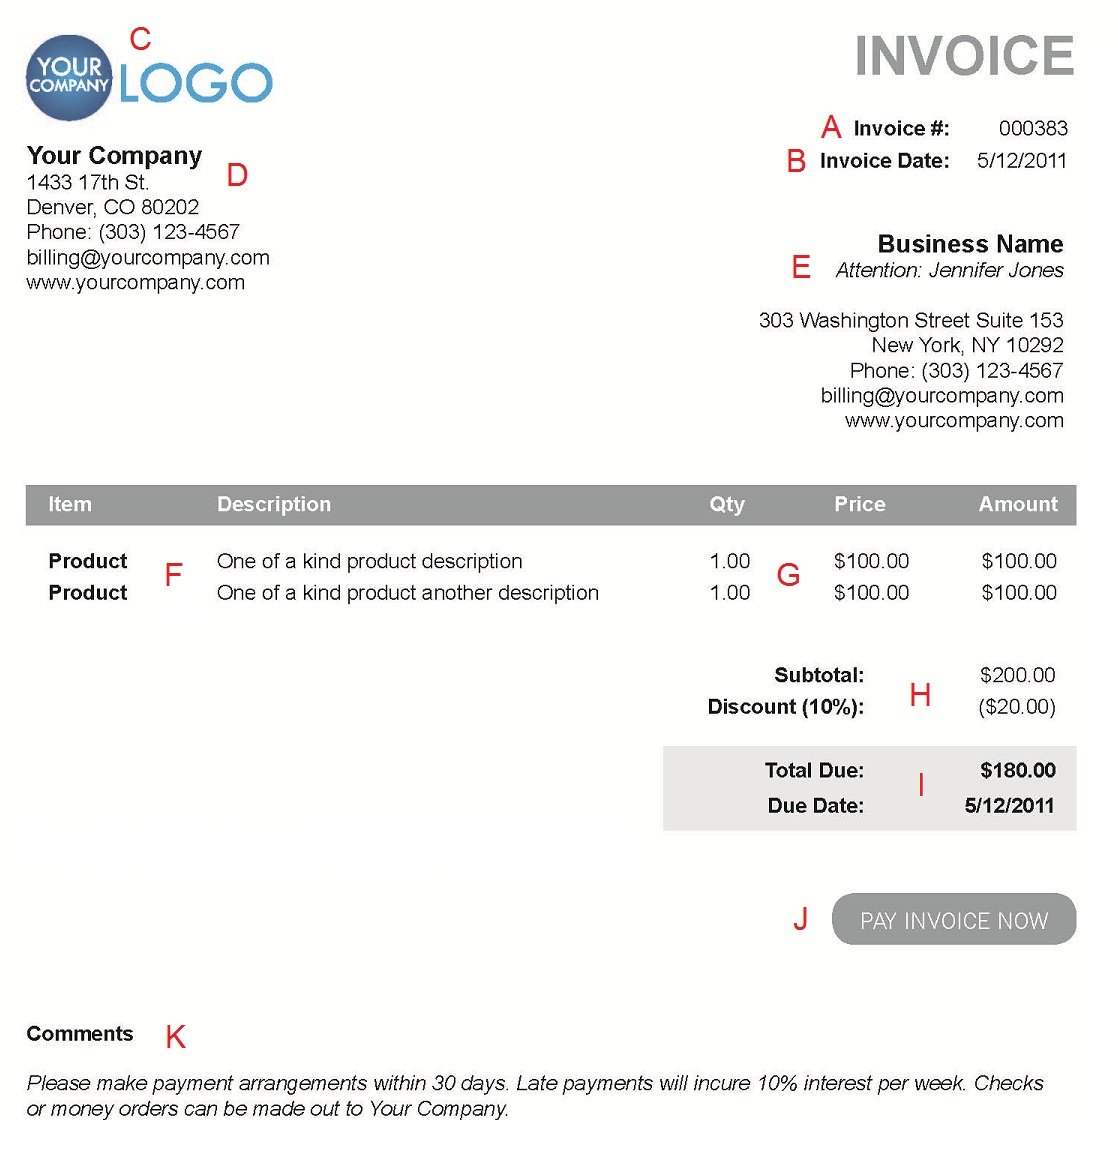 Darkfaderus  Sweet The  Different Sections Of An Electronic Payment Invoice With Excellent A  With Nice Quicken Invoice Also Quickbooks Email Invoice Setup In Addition Quickbooks Import Invoices From Excel And What Is Proforma Invoice In Business As Well As Make A Invoice Additionally Invoice Template Usa From Paysimplecom With Darkfaderus  Excellent The  Different Sections Of An Electronic Payment Invoice With Nice A  And Sweet Quicken Invoice Also Quickbooks Email Invoice Setup In Addition Quickbooks Import Invoices From Excel From Paysimplecom